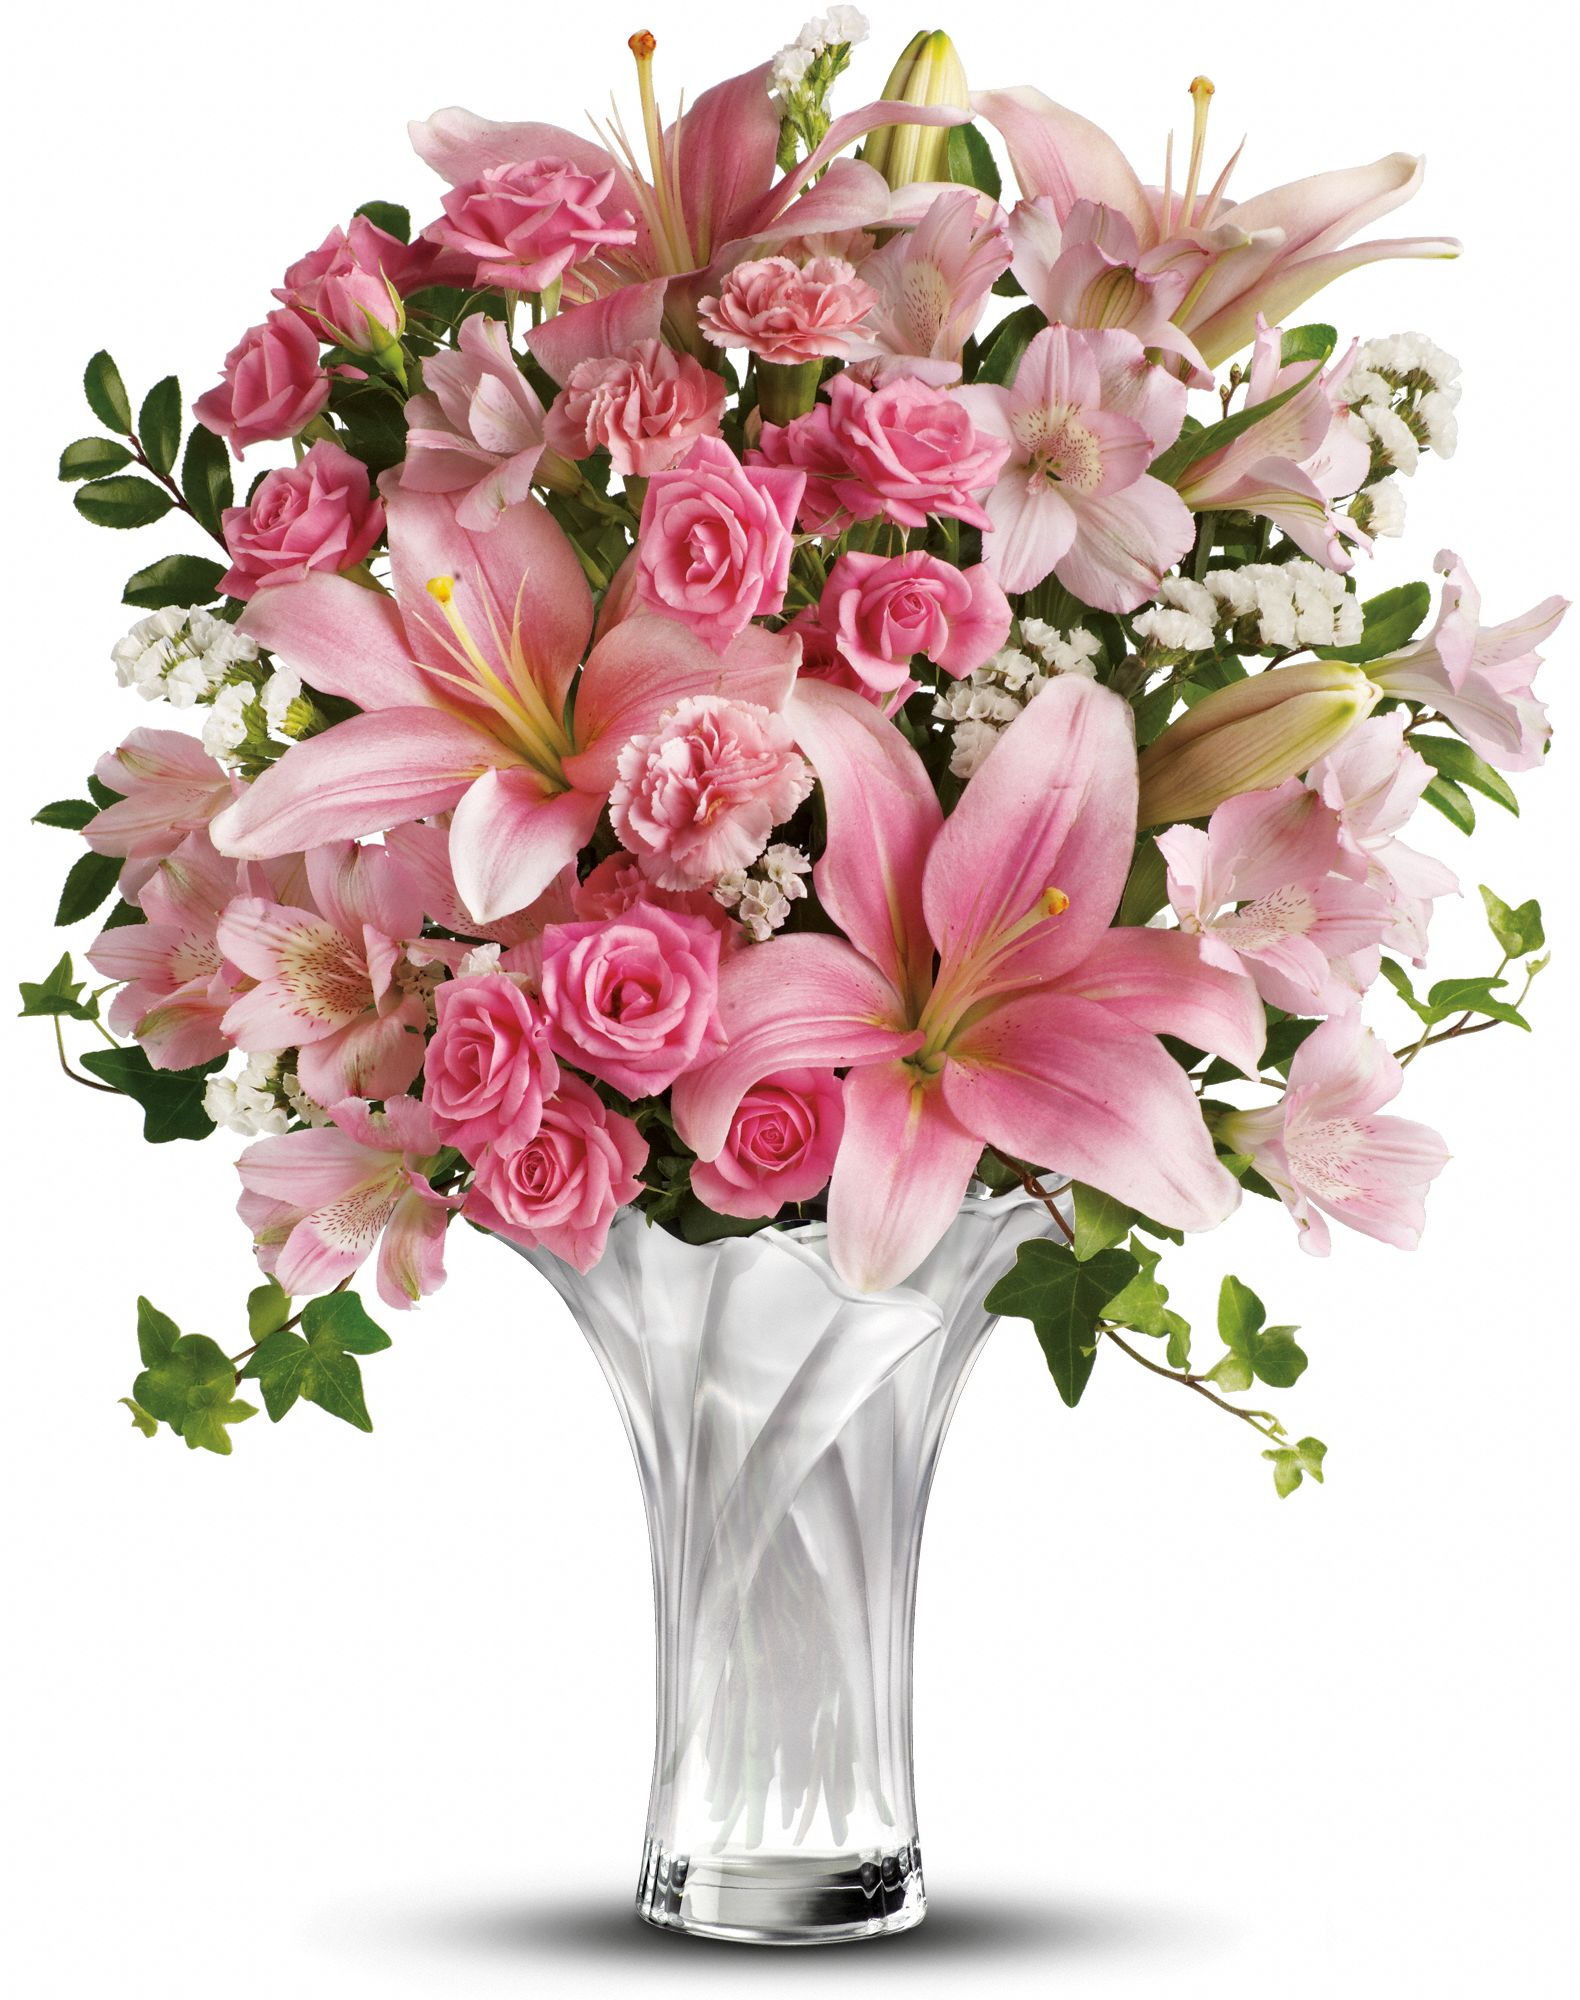 Looking for Gift Ideas for Mother's Day? | Teleflora.